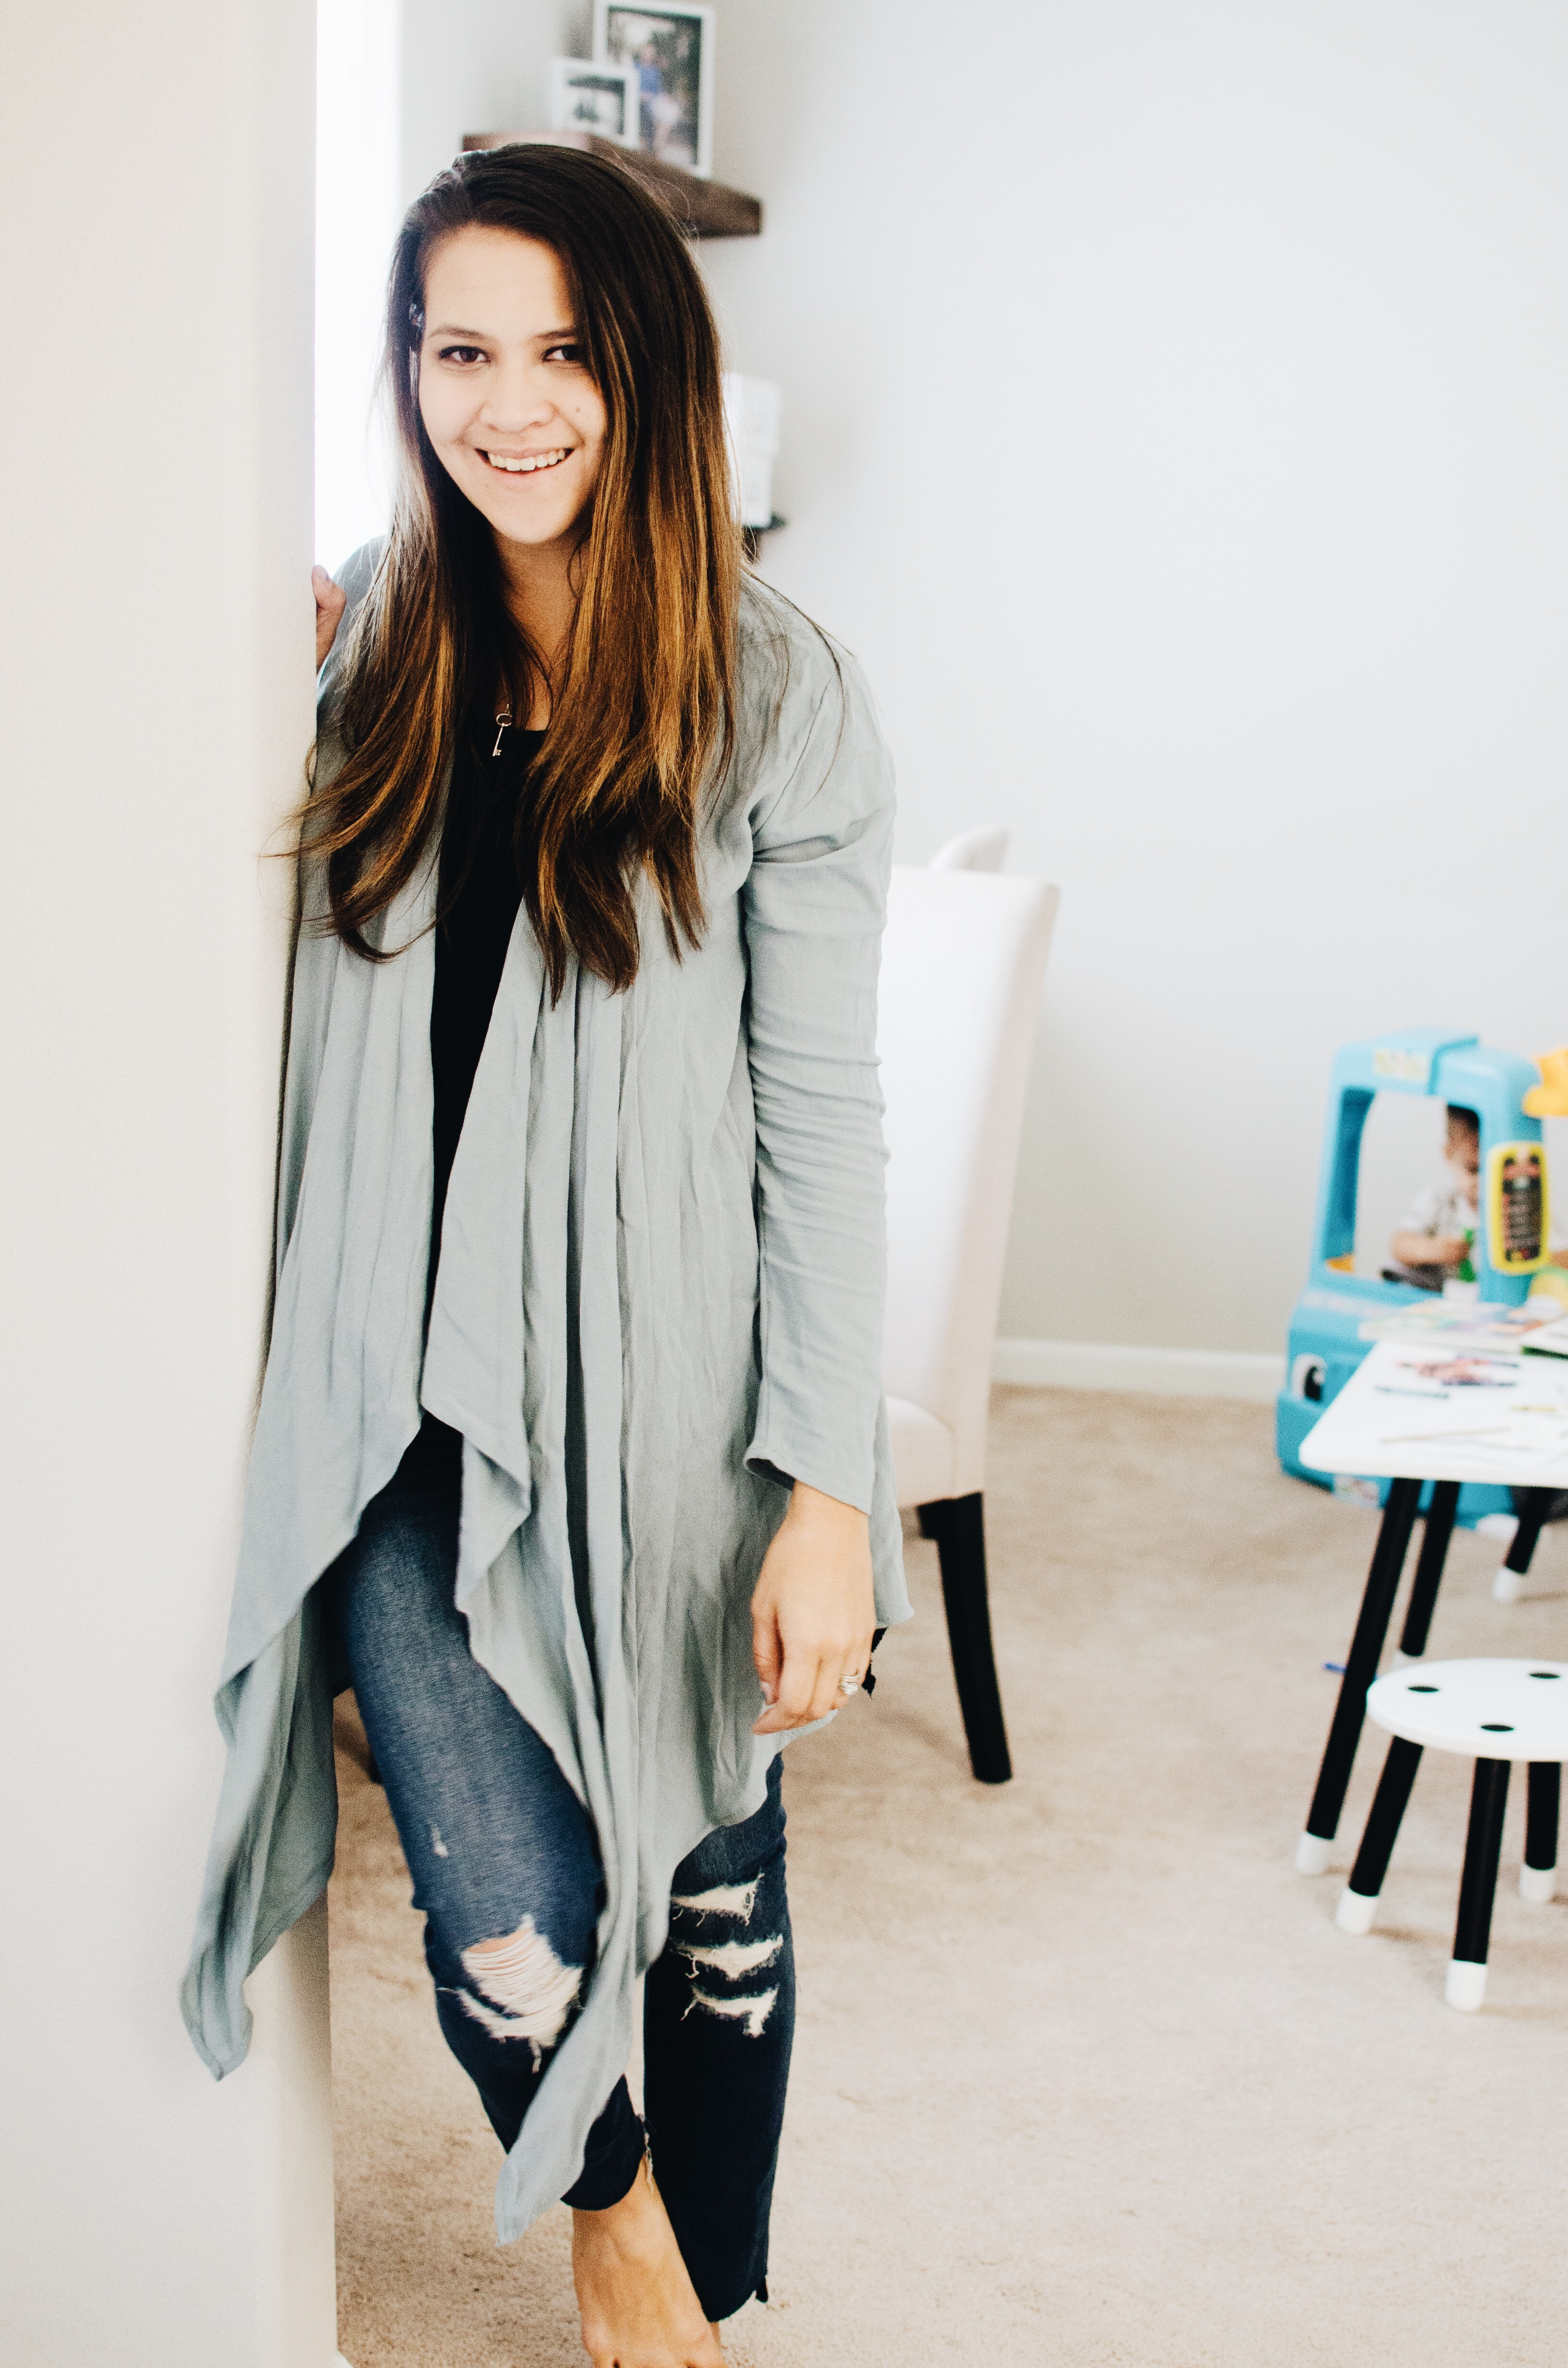 Our mornings at home in a Pink Blush long cardigan. Perfect for cool mornings and drinking coffee